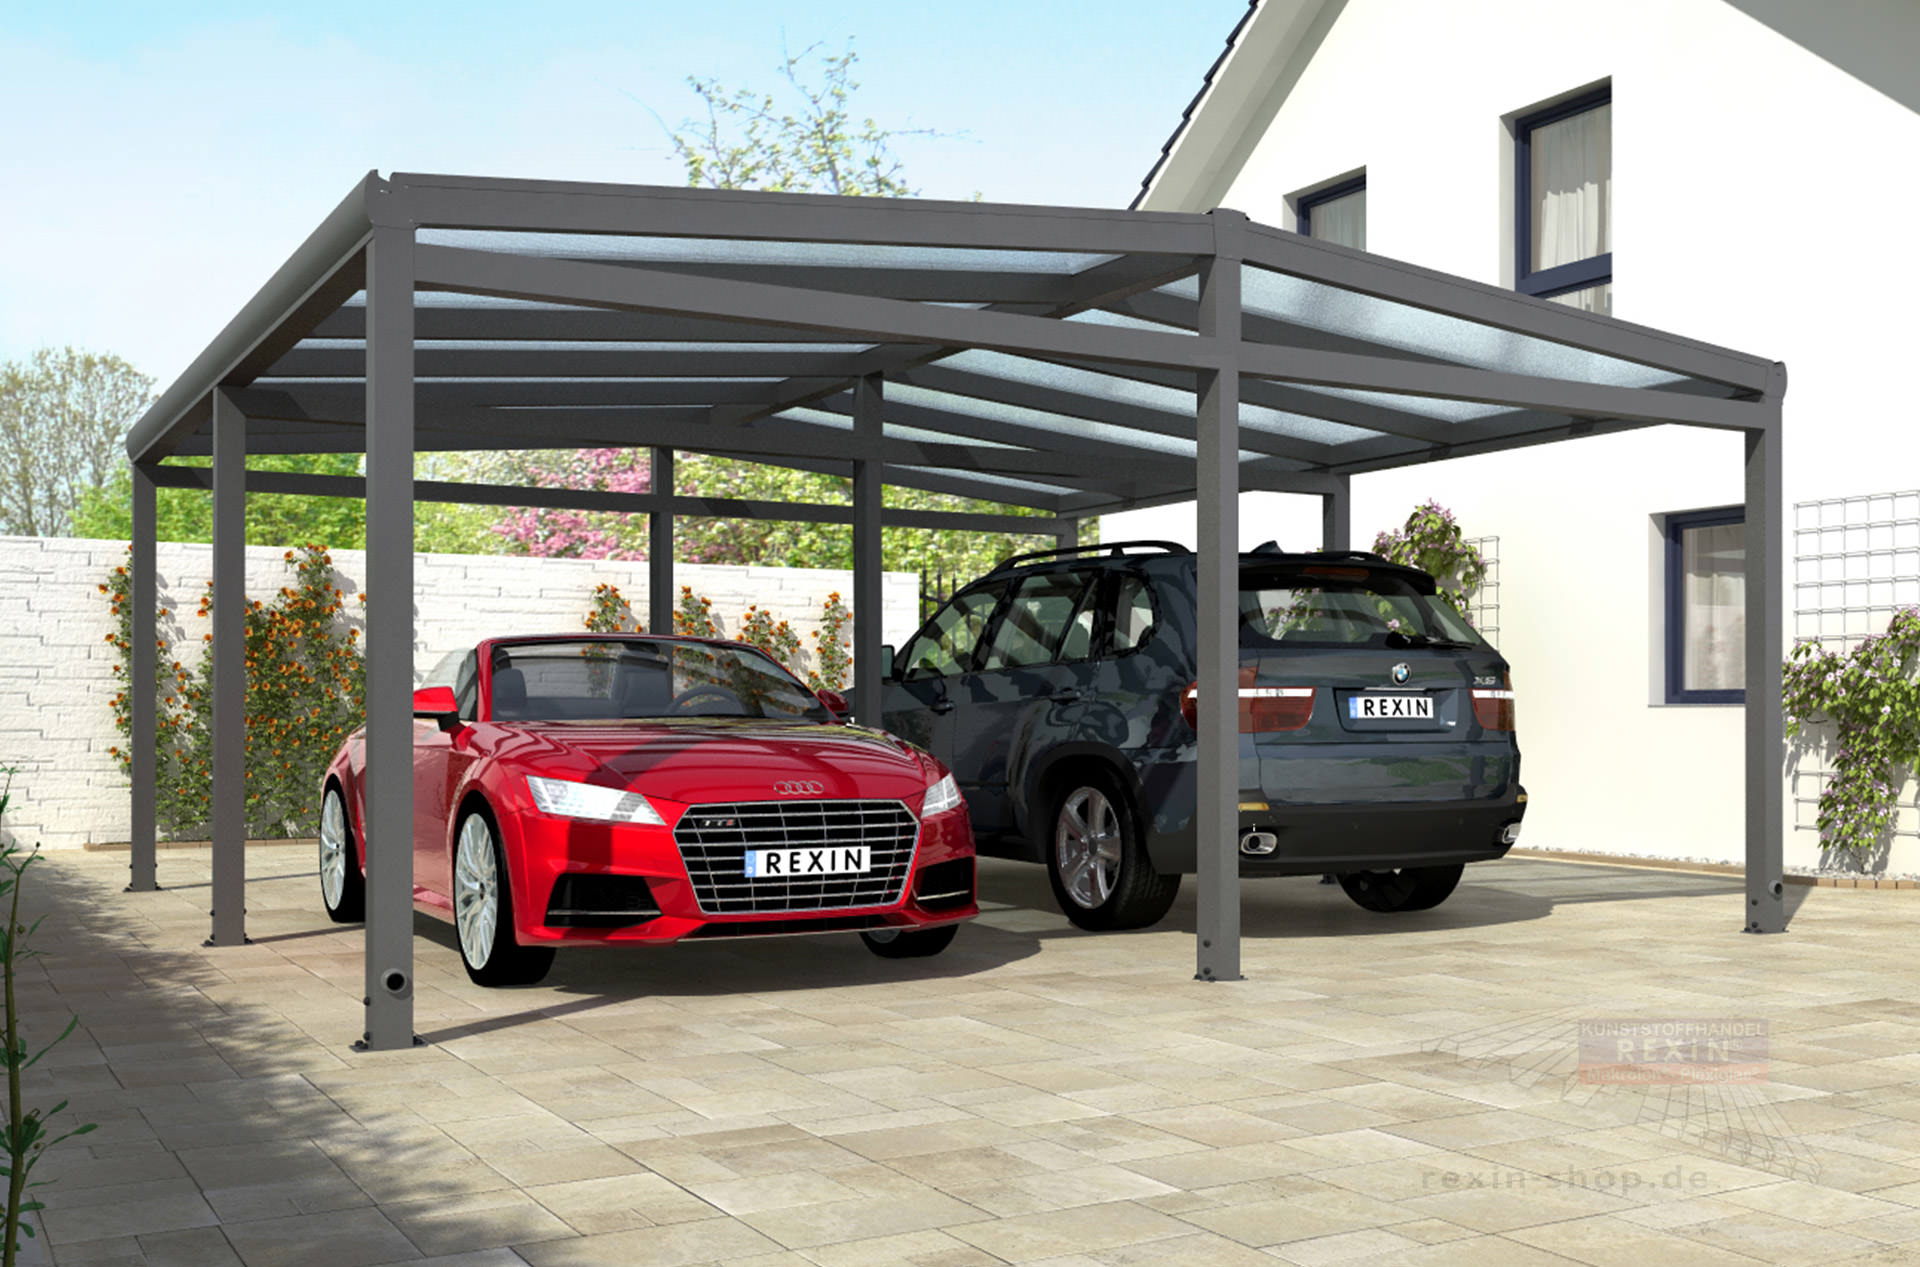 rexoport alu carport bausatz 6 13m x 6 06m rexoport alu carport bausatz 6 13m x 6 06m rexin shop. Black Bedroom Furniture Sets. Home Design Ideas